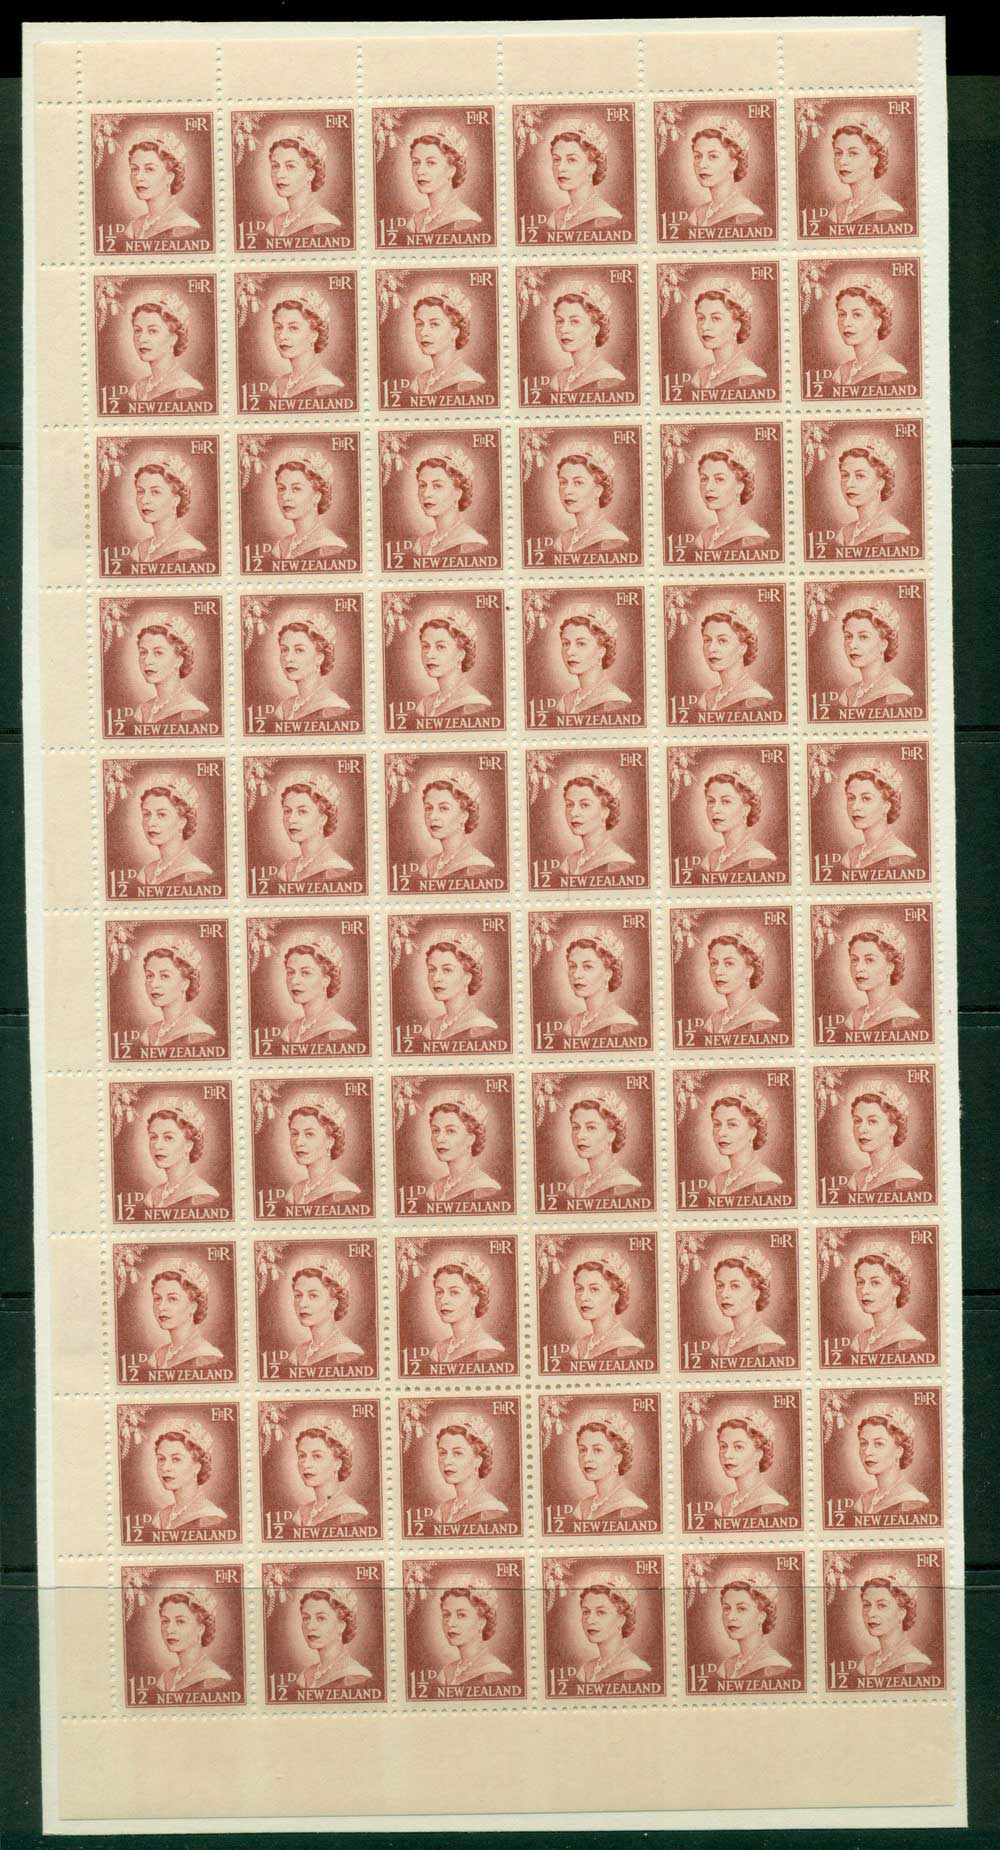 New Zealand 1956 QEII Redrawn 1�d Lake Brown Plate 10 Part Sheet 60 before Retouching MH/MUH Lot25637